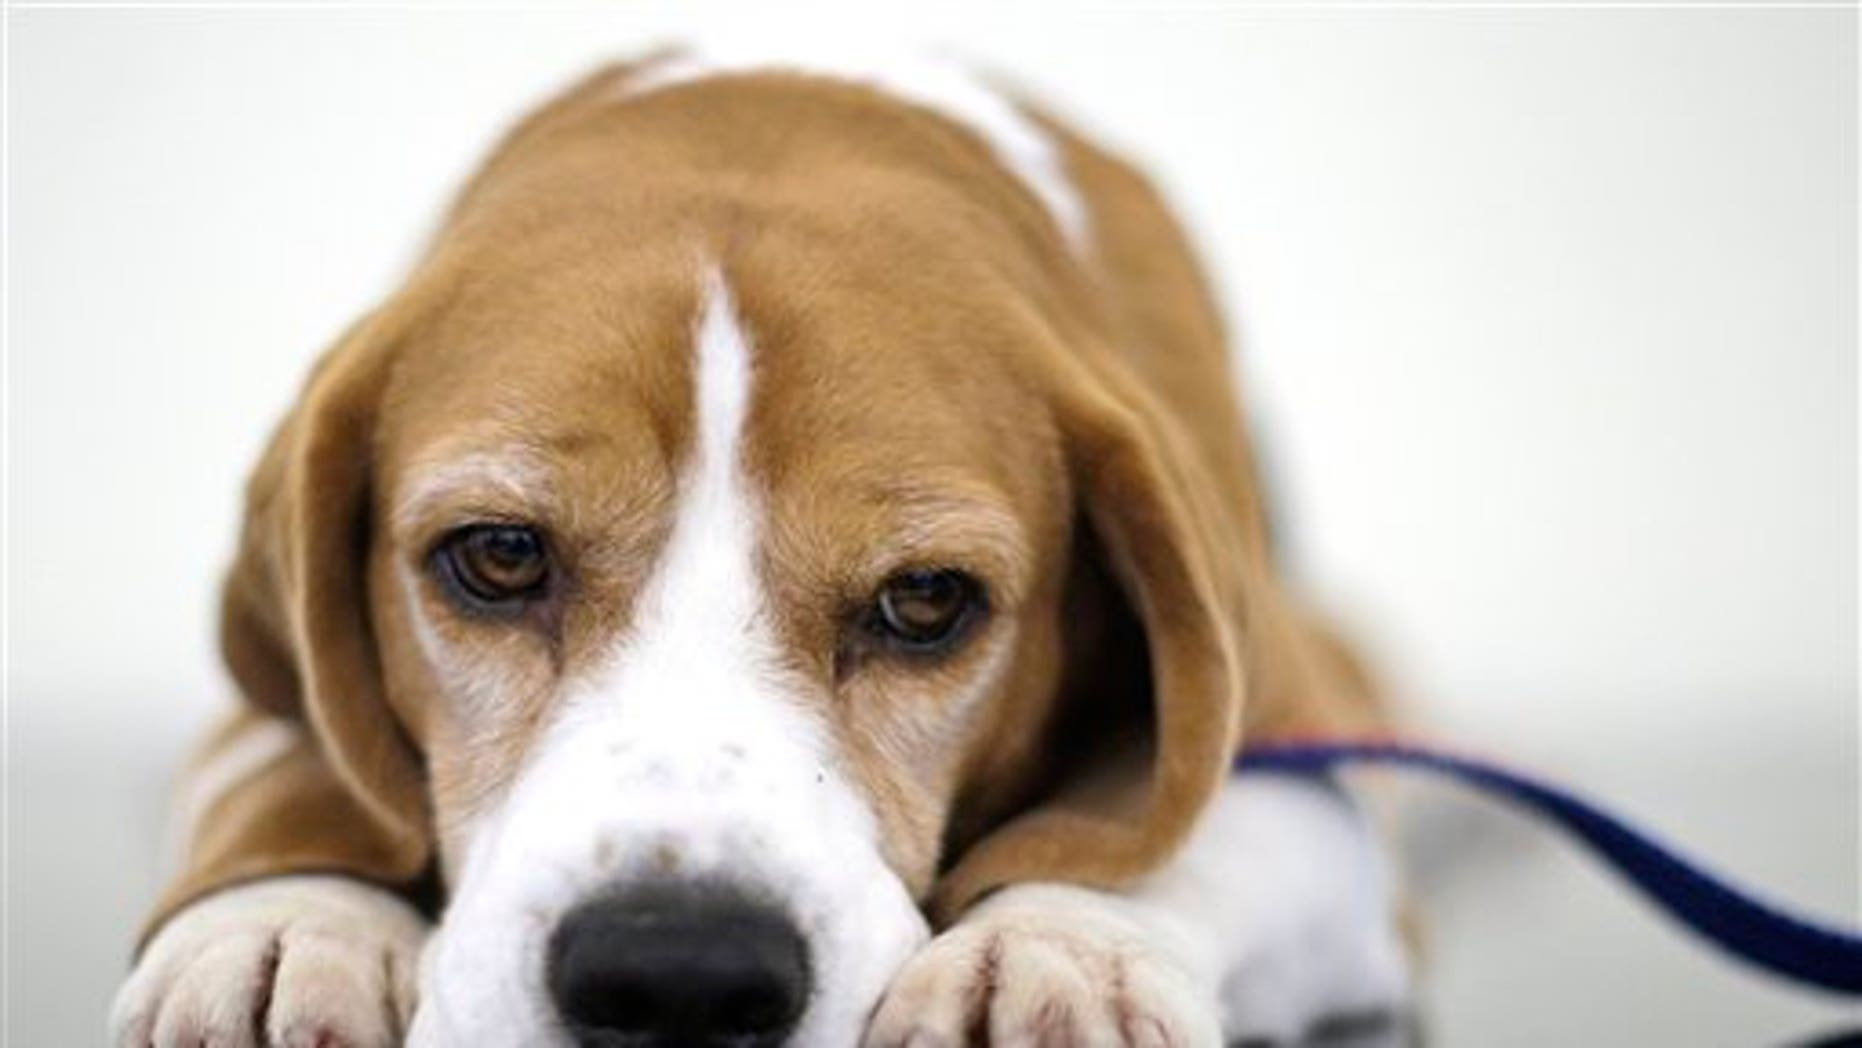 Uno the beagle, winner of Best in Show at the 132nd Westminster Kennel Club Dog Show looks on before a fundraiser for Angel on a Leash, a therapy dog organization, Saturday, Feb. 13, 2010  in New York. Competition in the 134th Westminster Kennel Club Dog Show will take place Feb. 15 and 16 at Madison Square Garden.